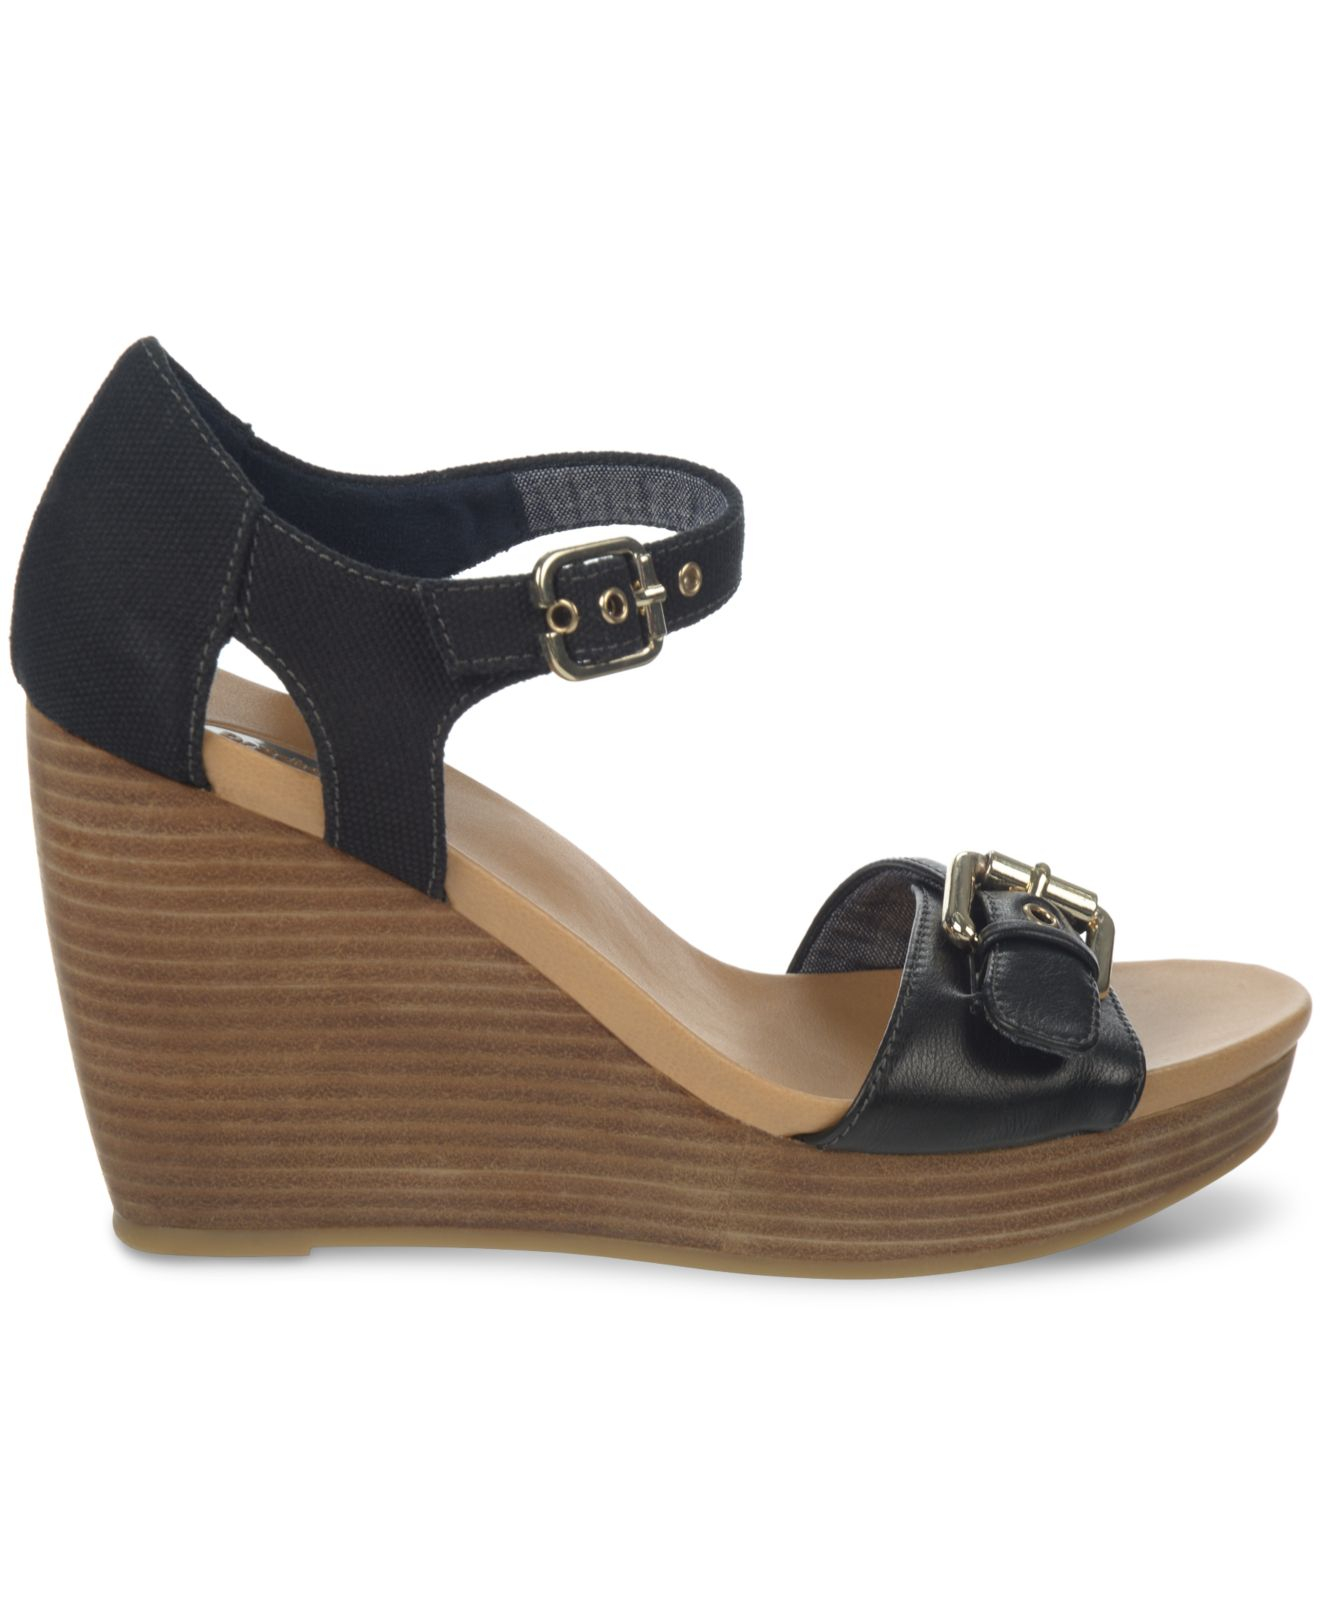 Online shopping for Clothing, Shoes & Jewelry from a great selection of Flip-Flops, Heeled Sandals, Platforms & Wedges, Flats & more at everyday low prices.